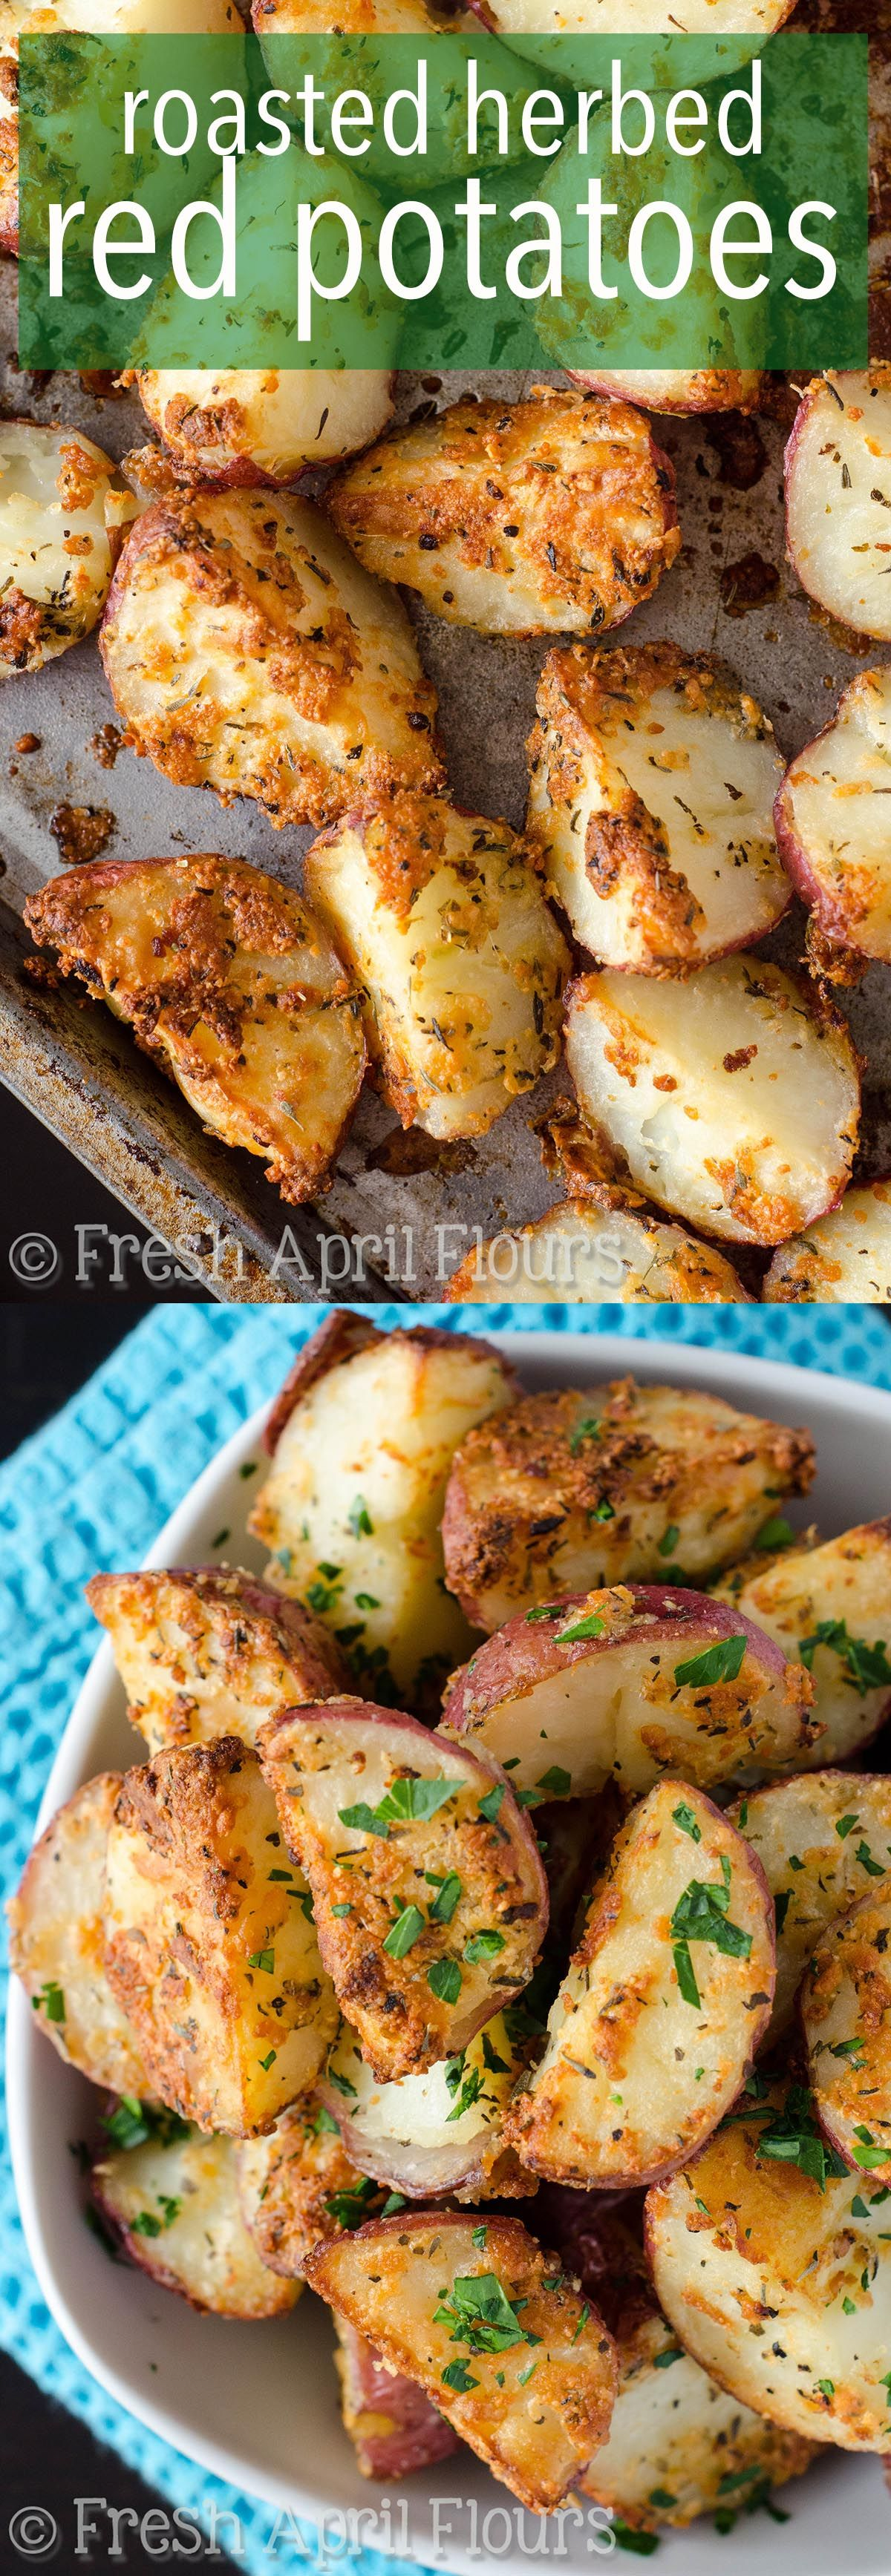 Roasted Herbed Red Potatoes images